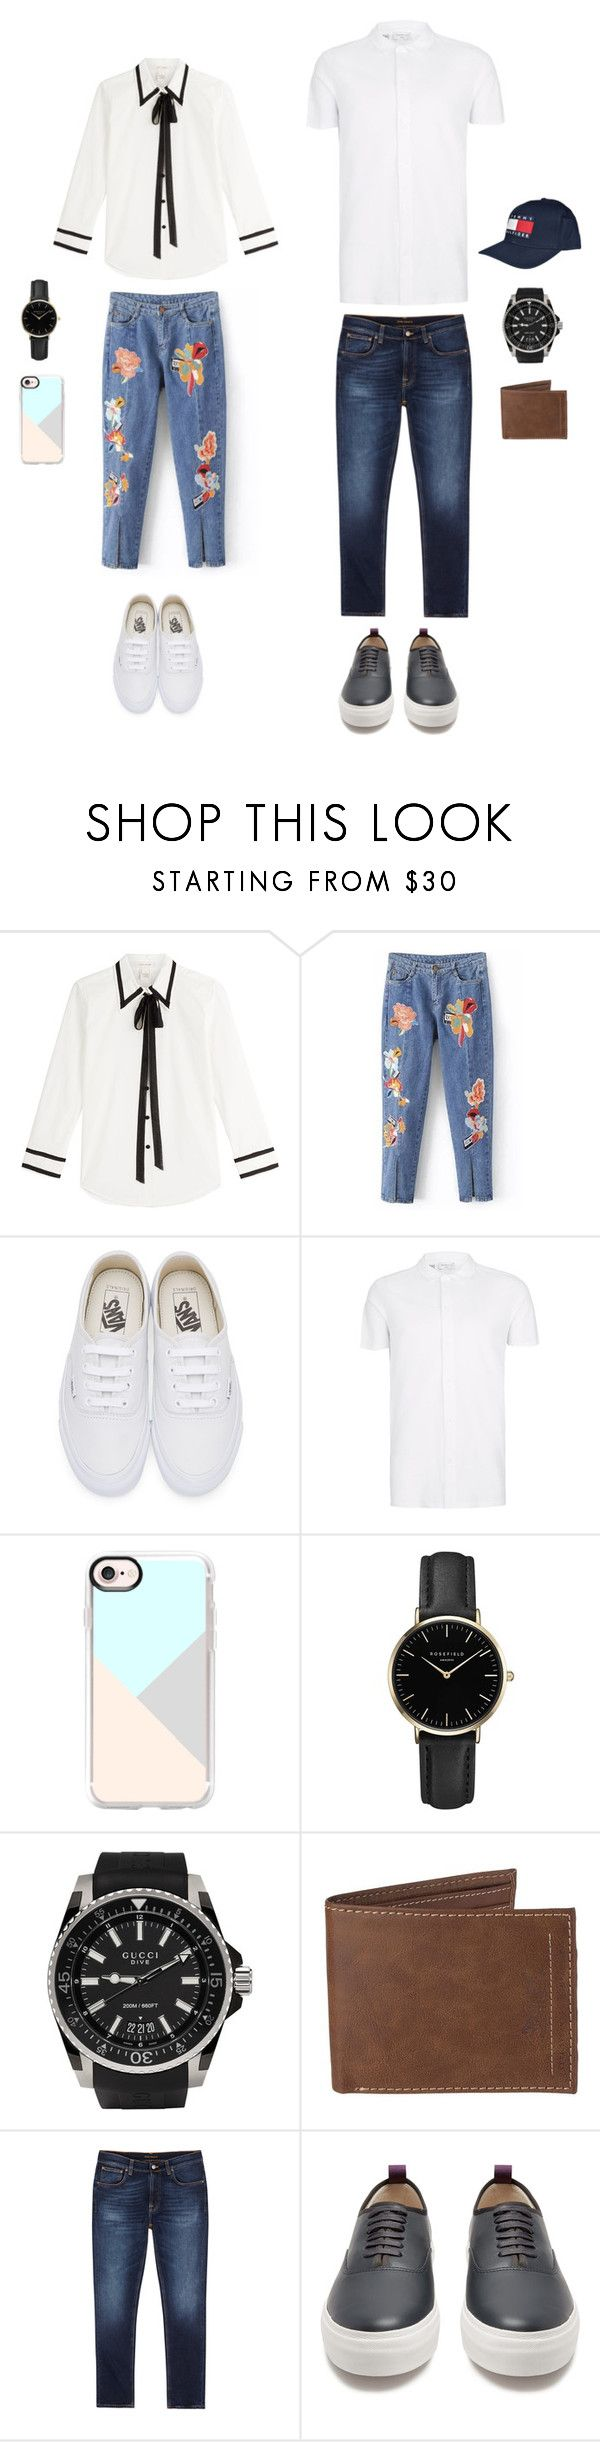 """Couple set"" by natasha-esprecielo on Polyvore featuring Marc Jacobs, Vans, Topman, Casetify, ROSEFIELD, Gucci, Levi's, Nudie Jeans Co., Eytys and Tommy Hilfiger"